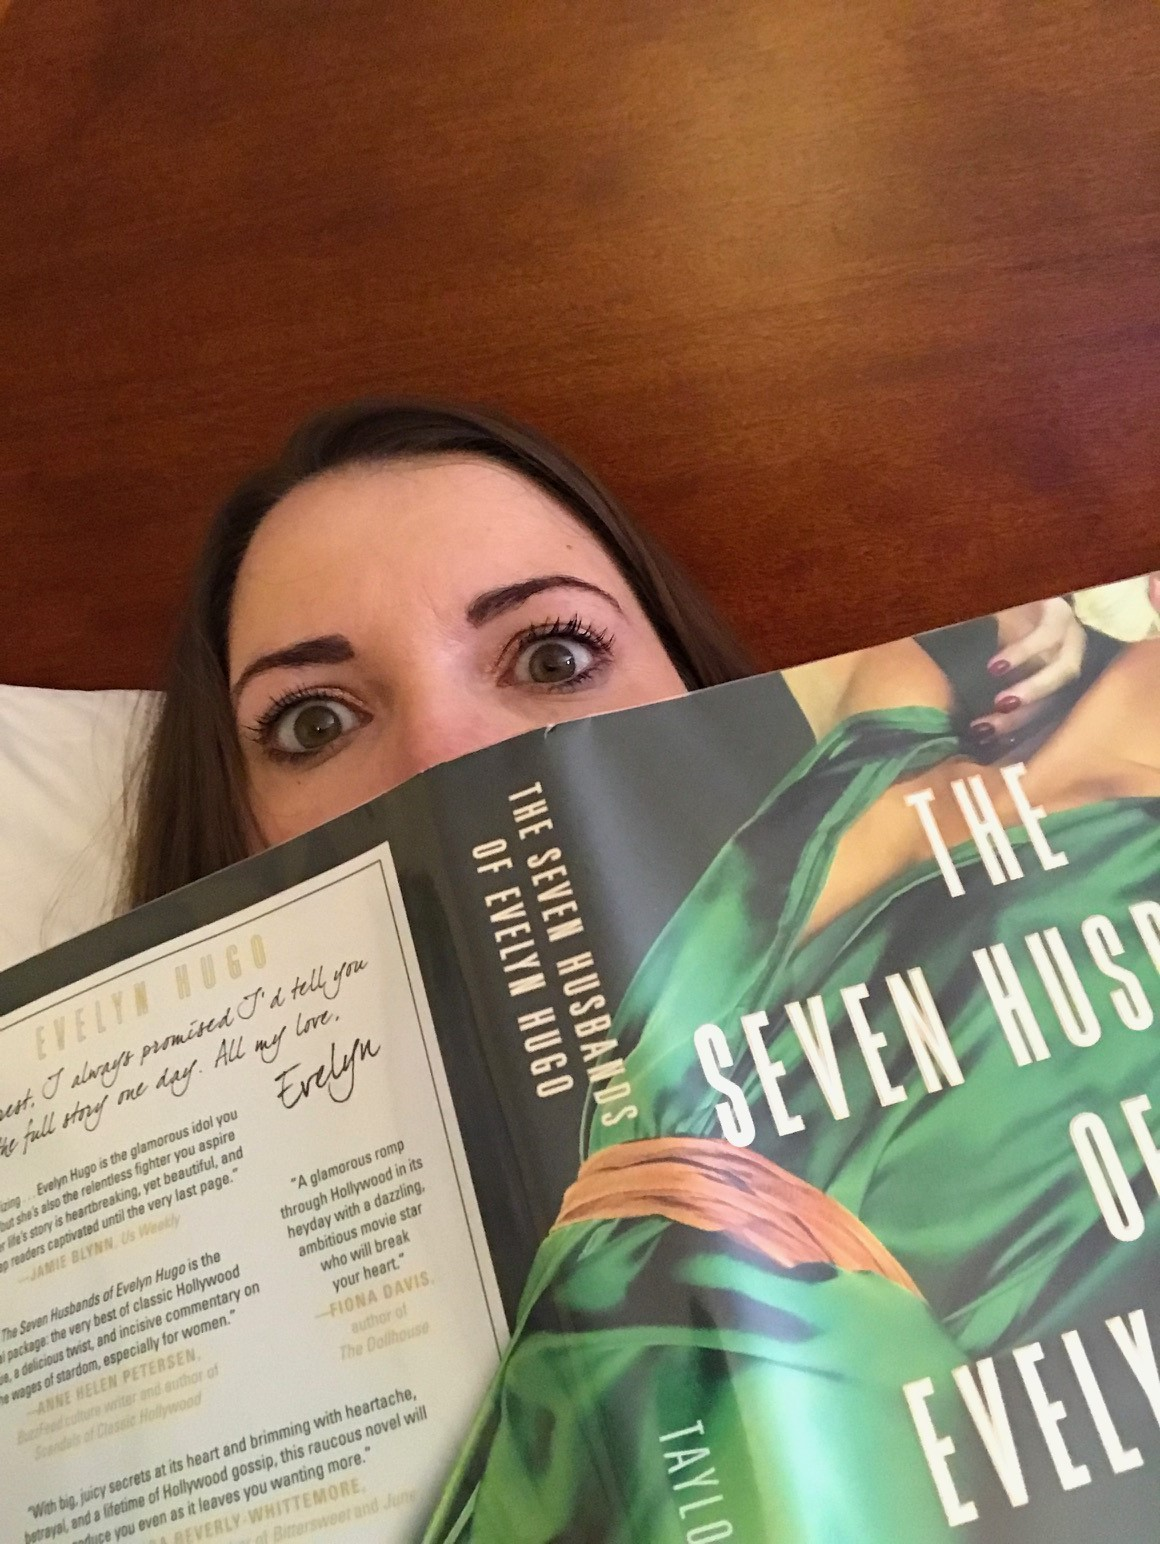 selfie with The seven Husbands of Evelyn Hugo book